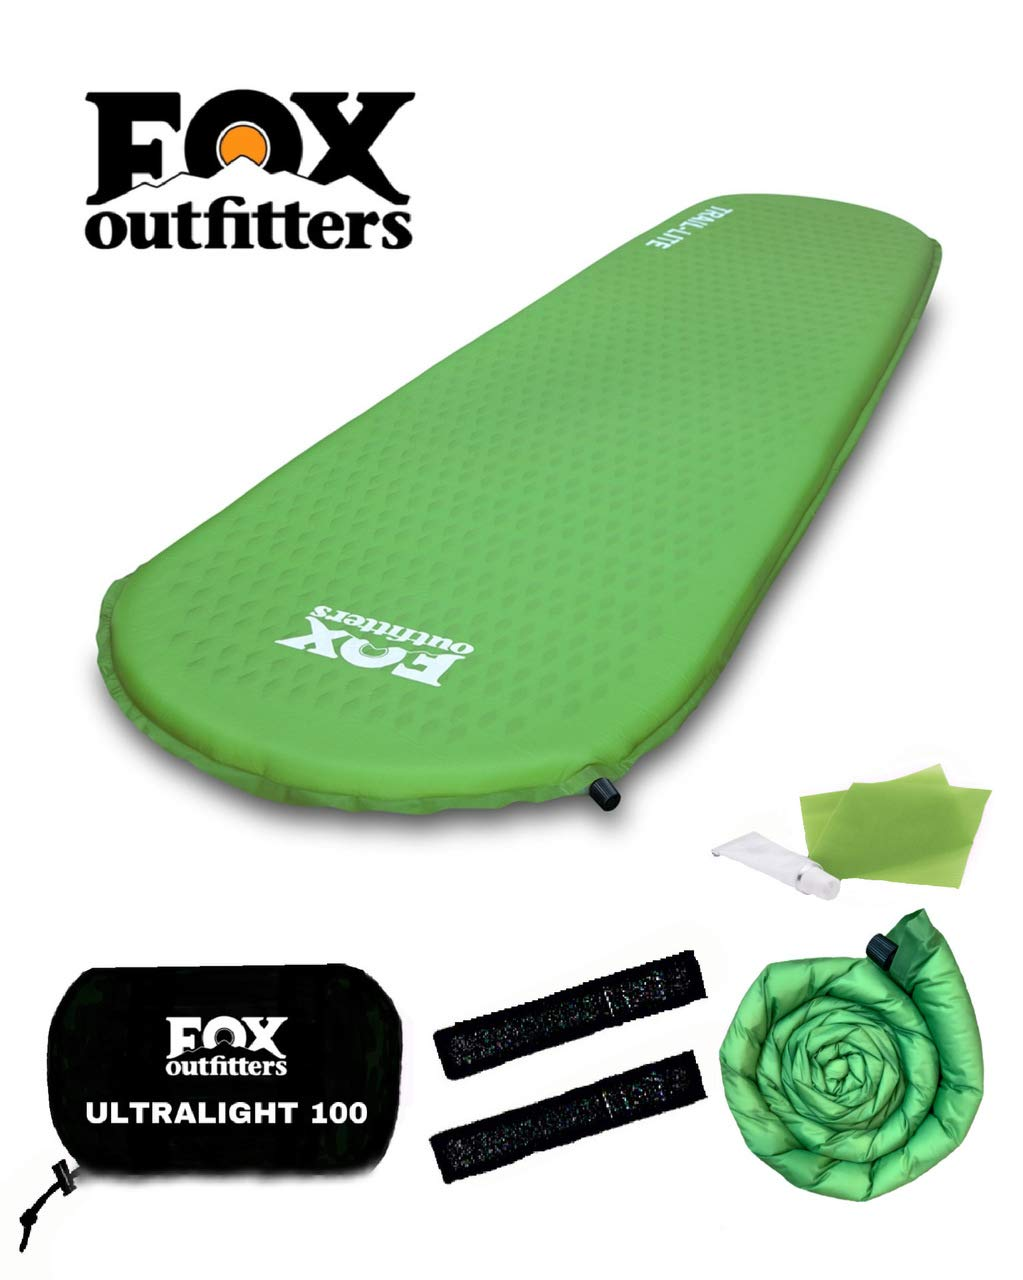 Fox Outfitters Ultralight Series Self Inflating Camp Pad - Perfect Foam Sleeping Pads for Camping, Backpacking, Hiking, Hammocks, Tents (Regular) by Fox Outfitters